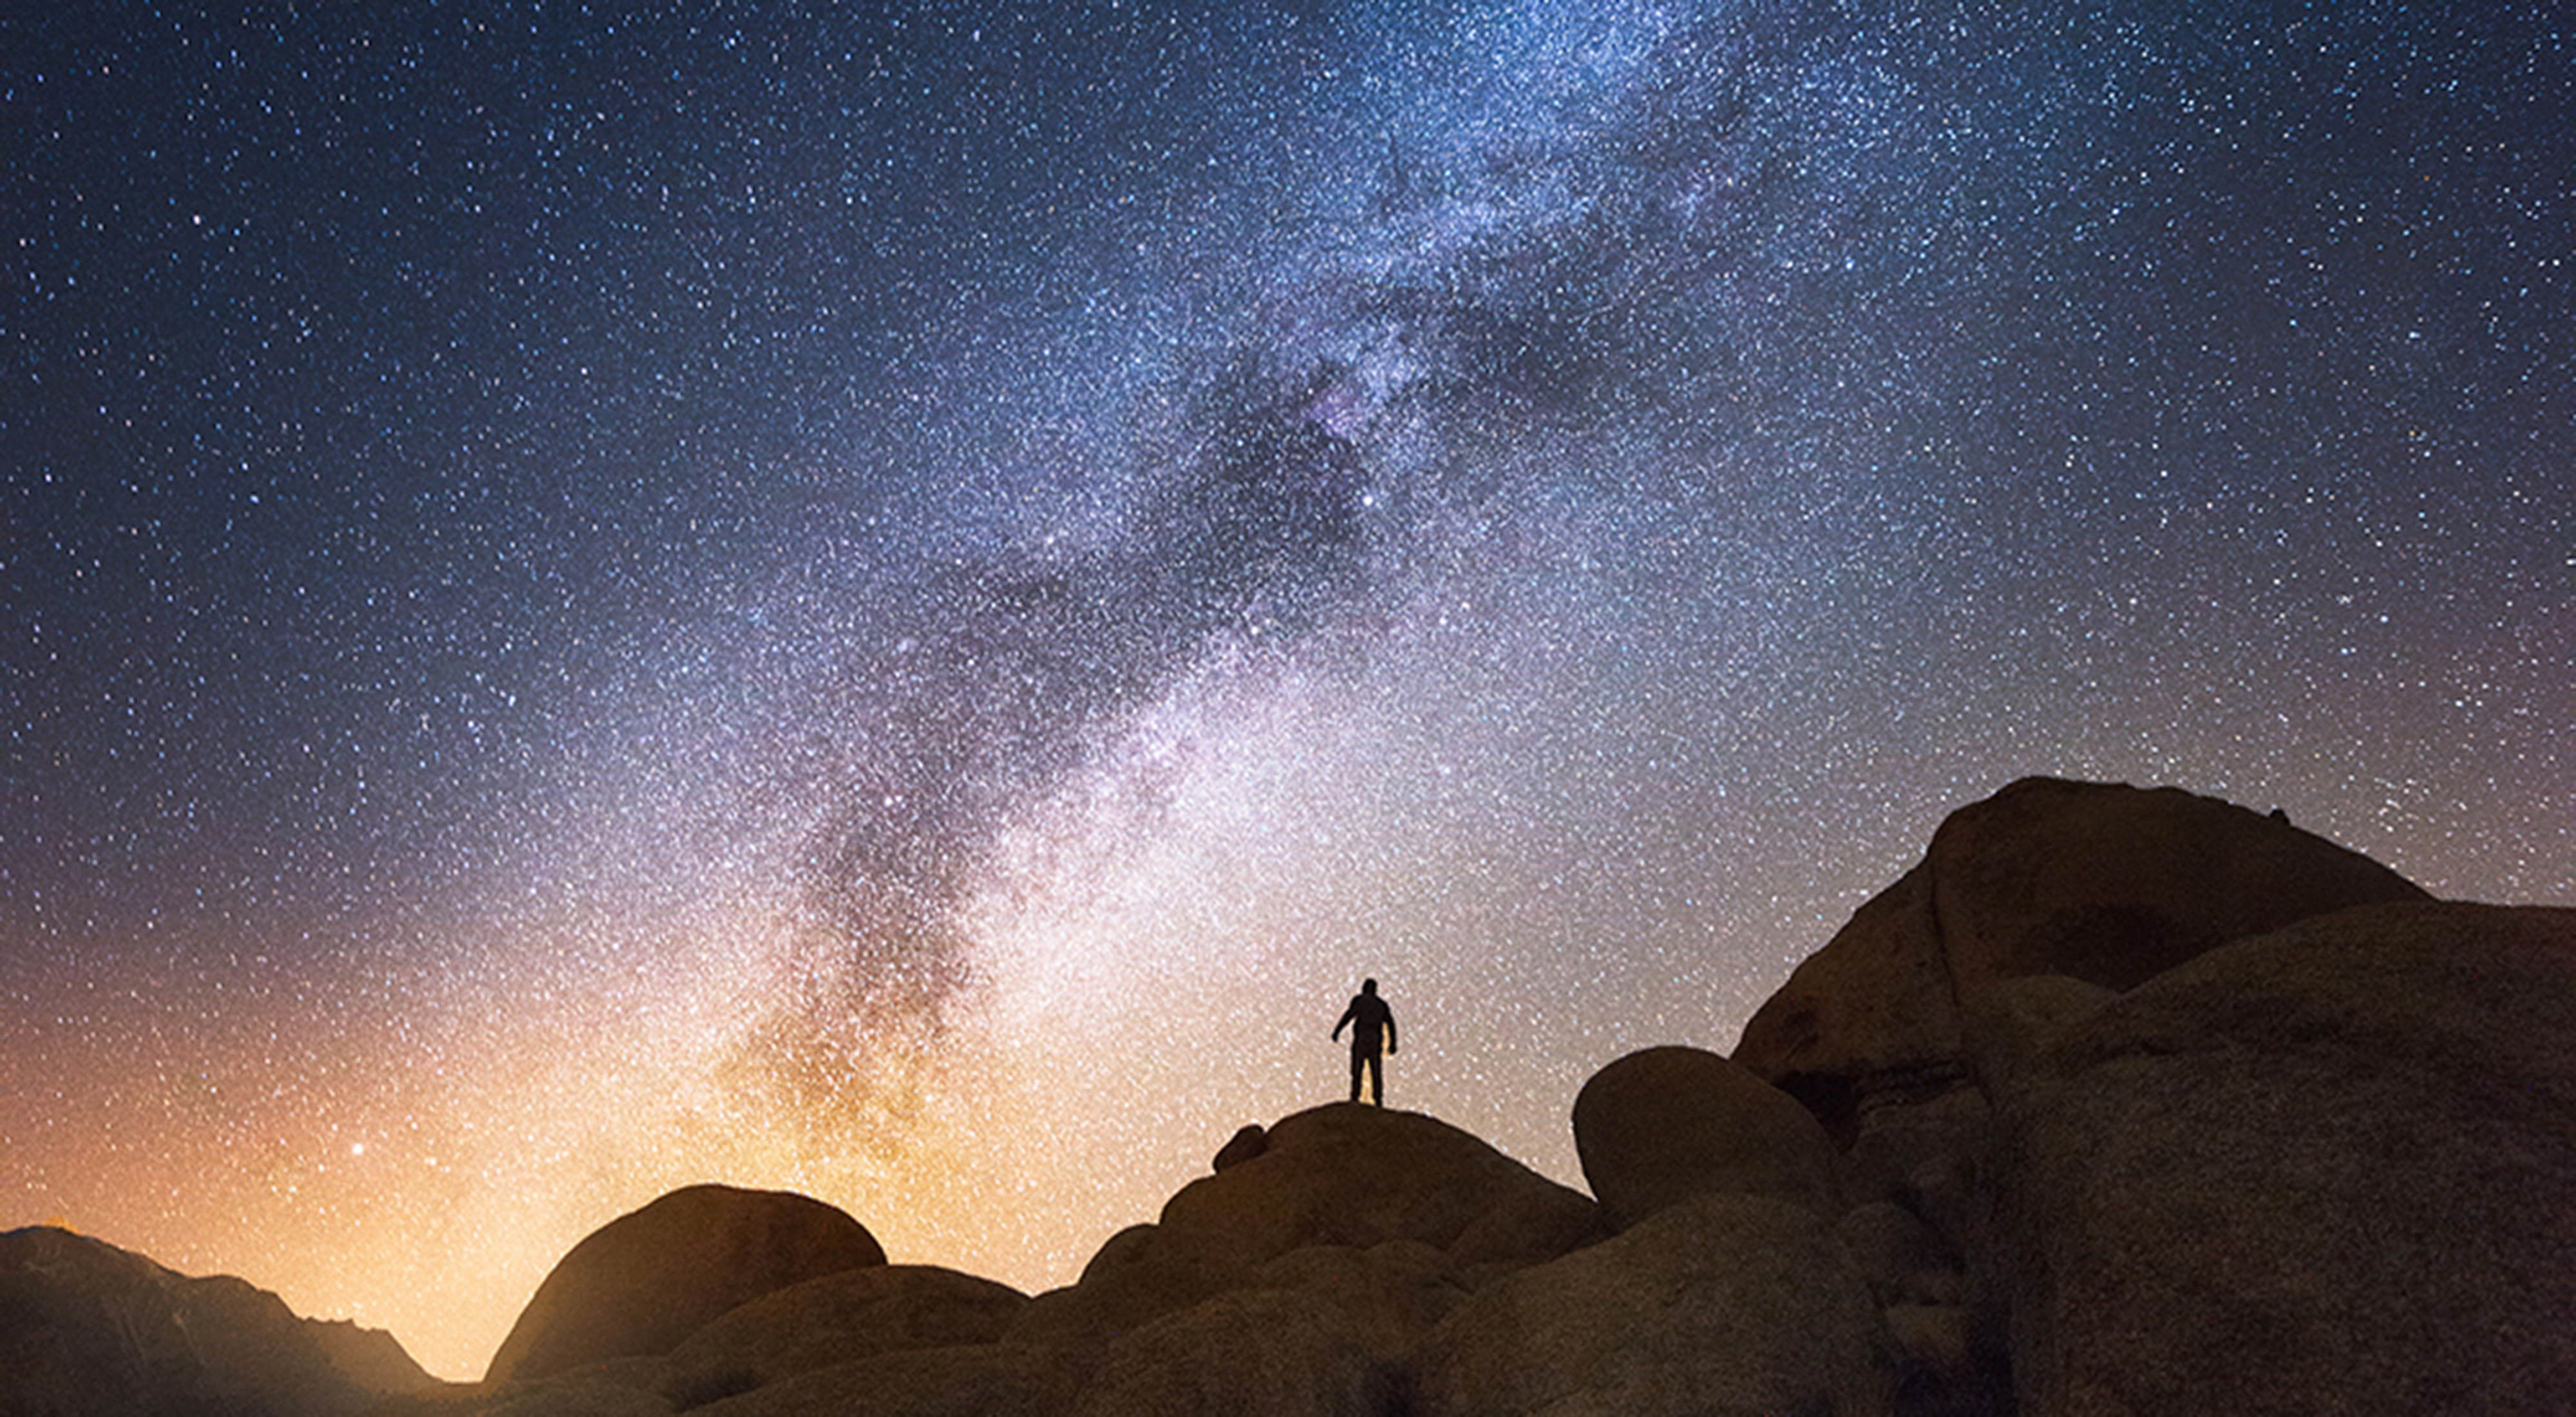 A hiker stands on a hill on a starry night.